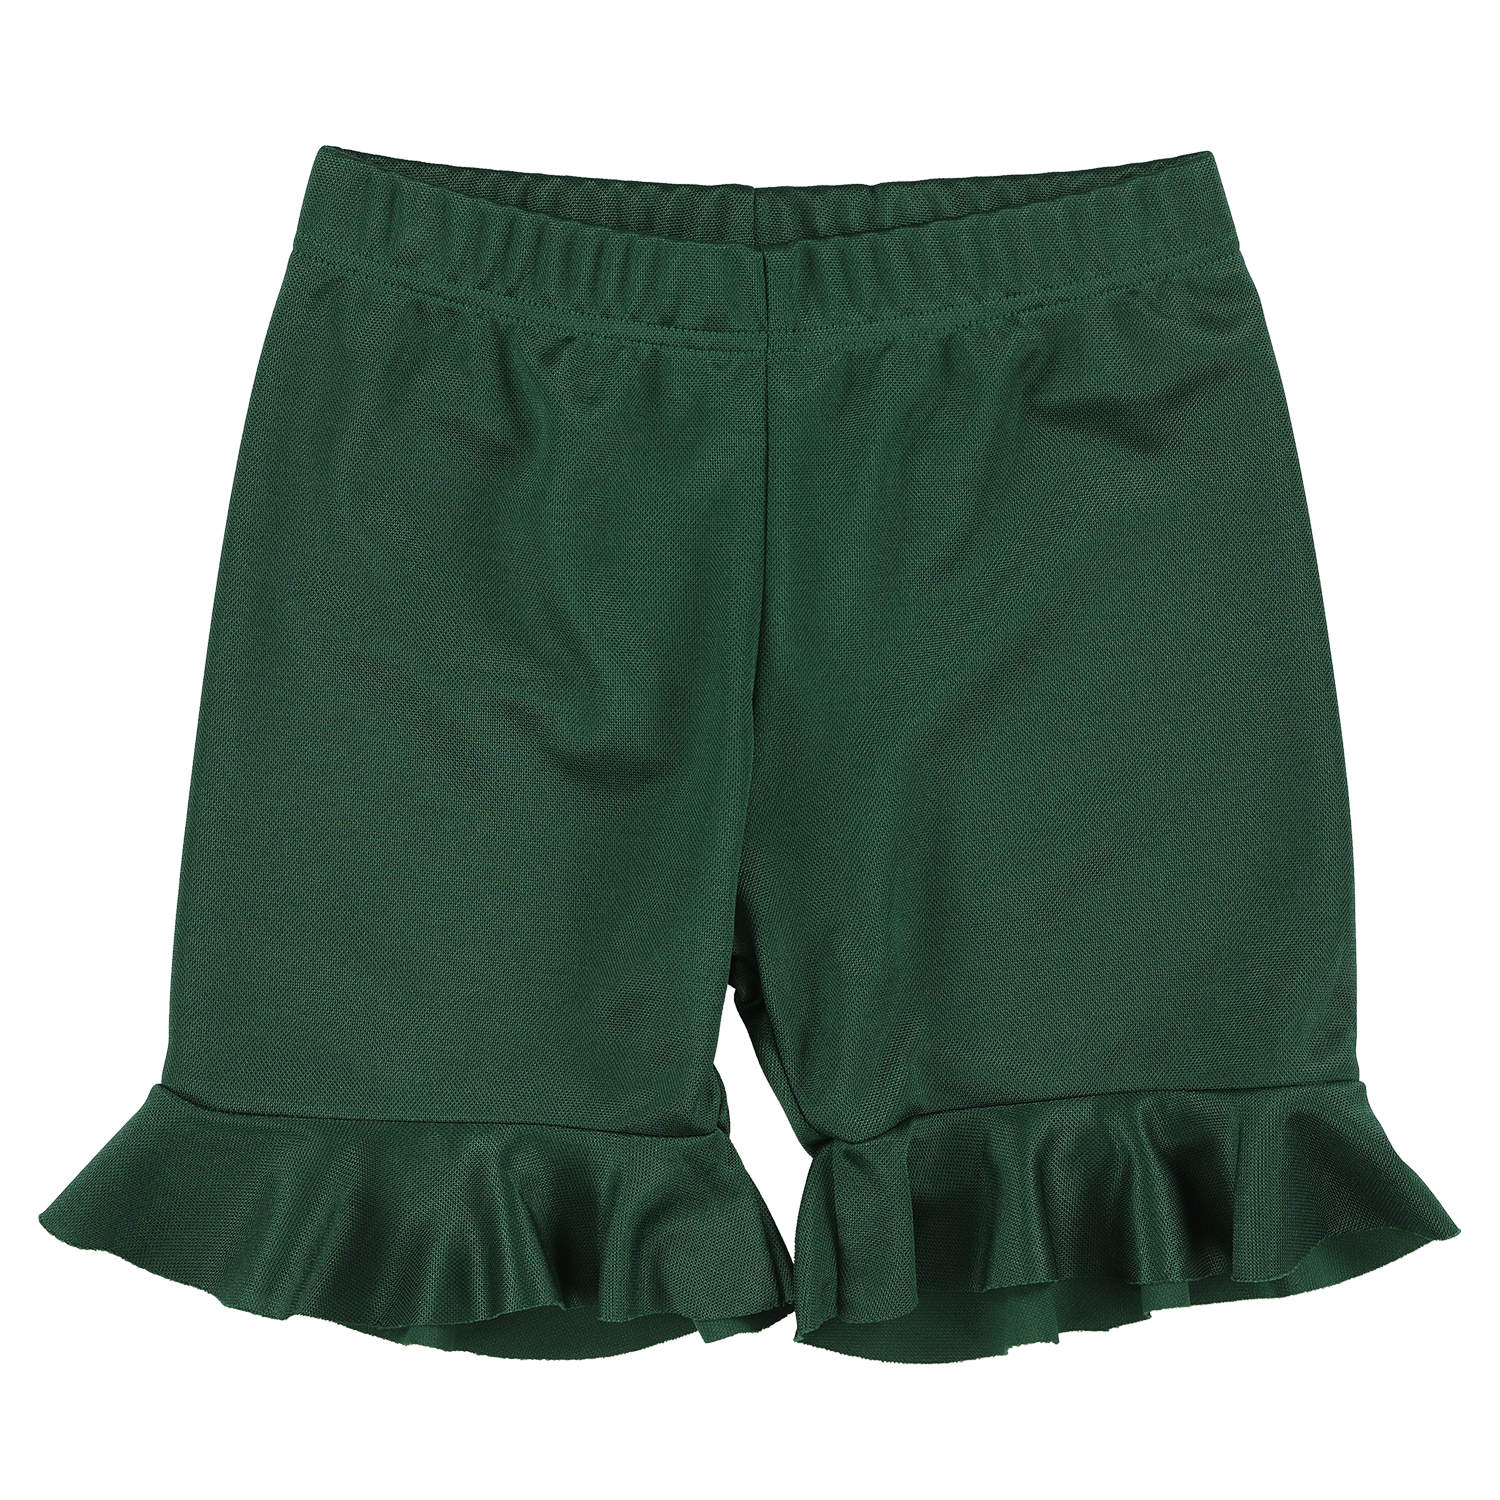 MODEL | 243 STYLE | 35 SPORT FOREST frilled shorts